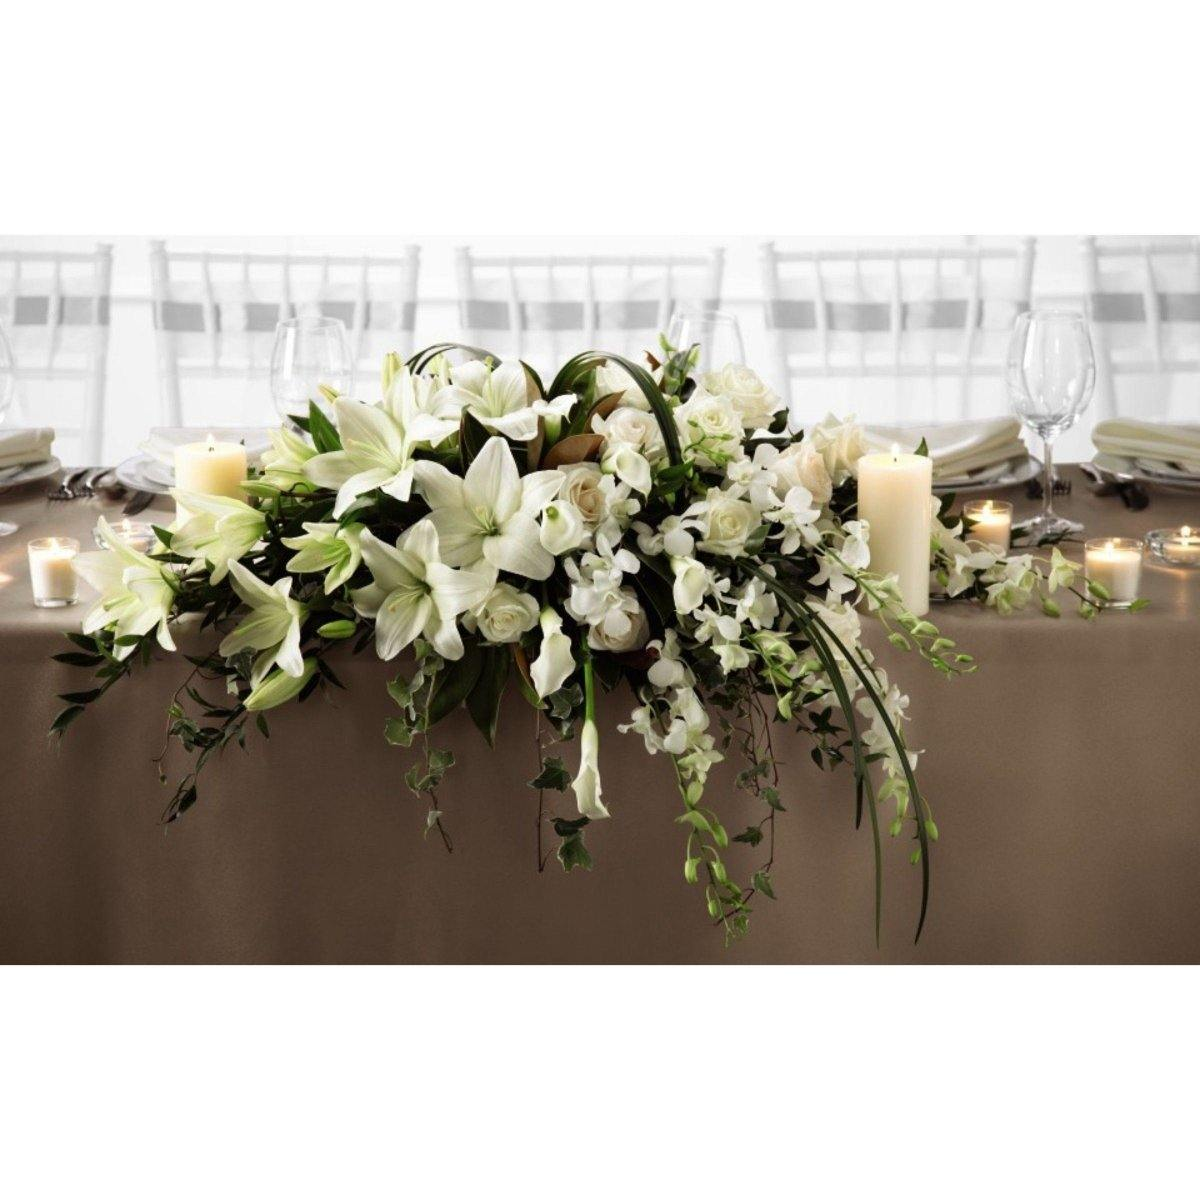 The FTD White Linen Arrangement - Shalimar Flower Shop